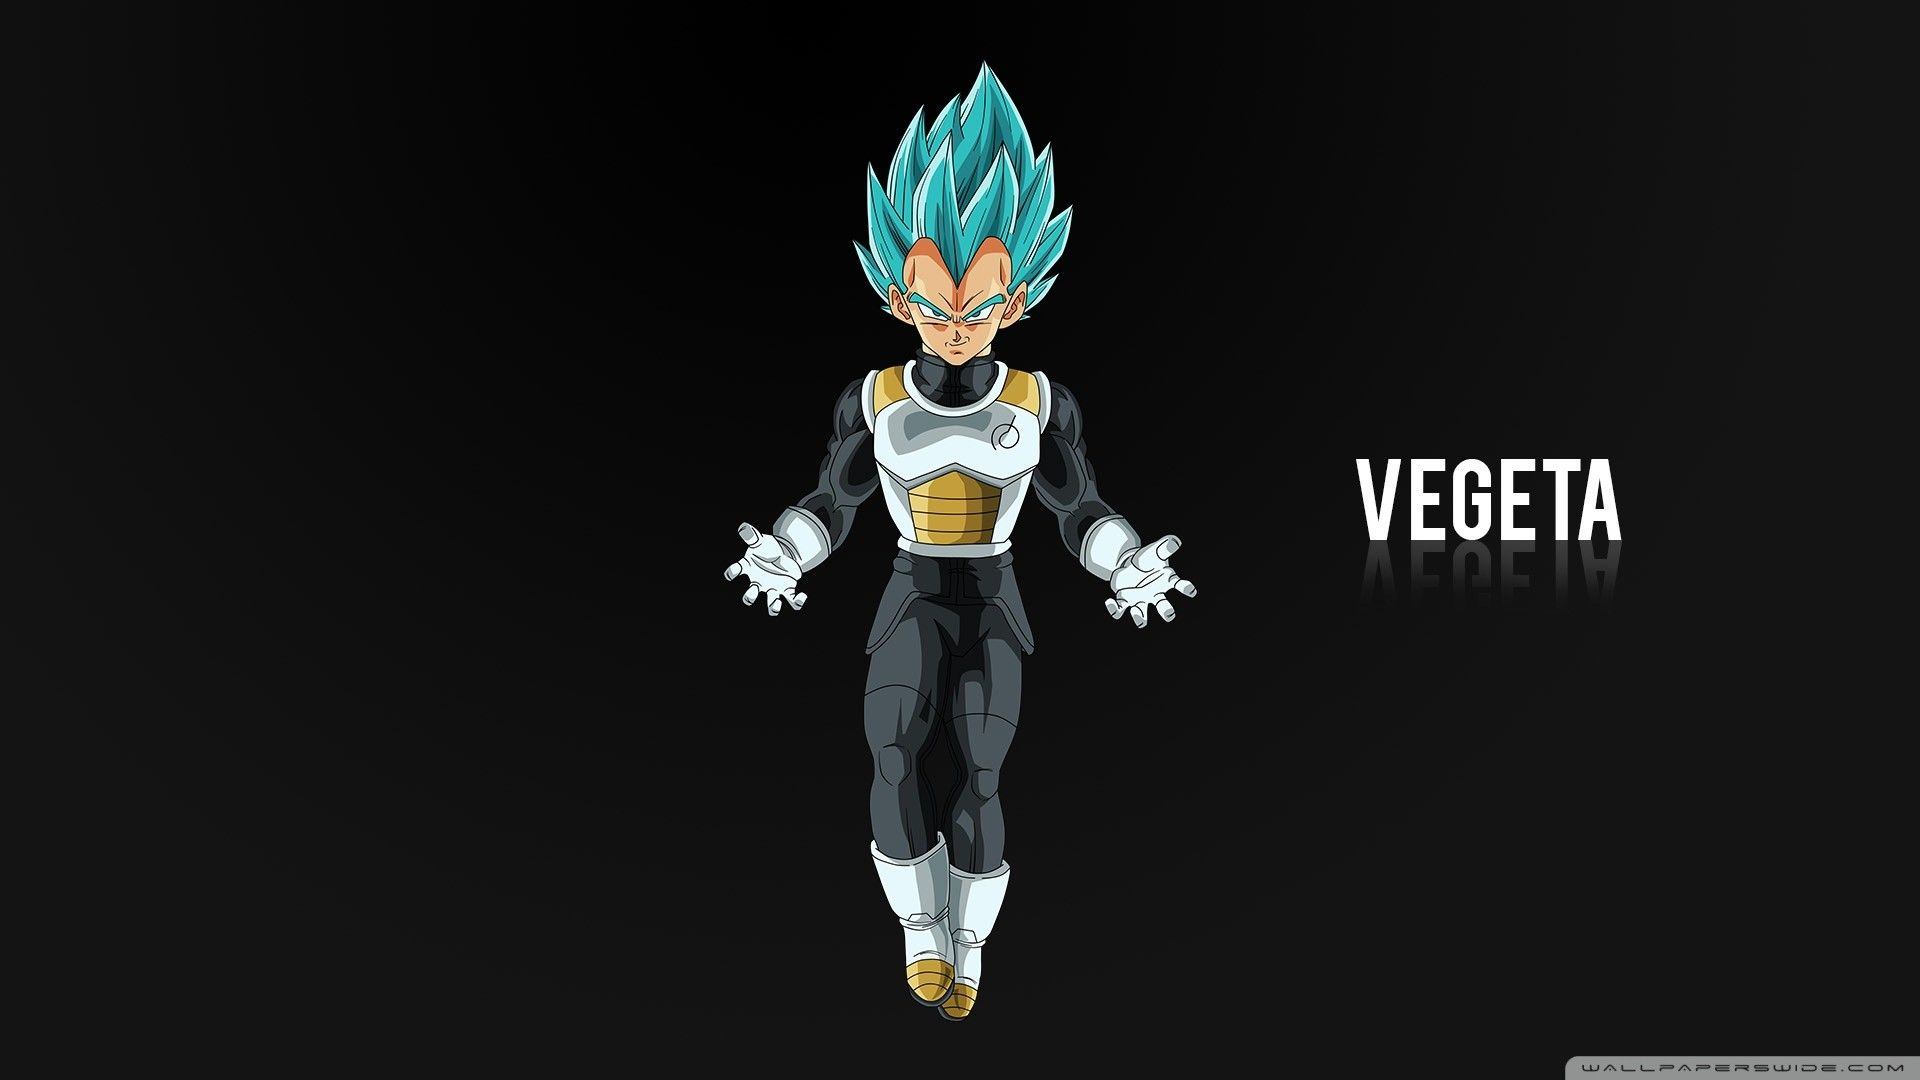 Pin By Rocki On Vegeta Goku In 2020 Hero Wallpaper Iphone Wallpaper Hipster Android Wallpaper Anime